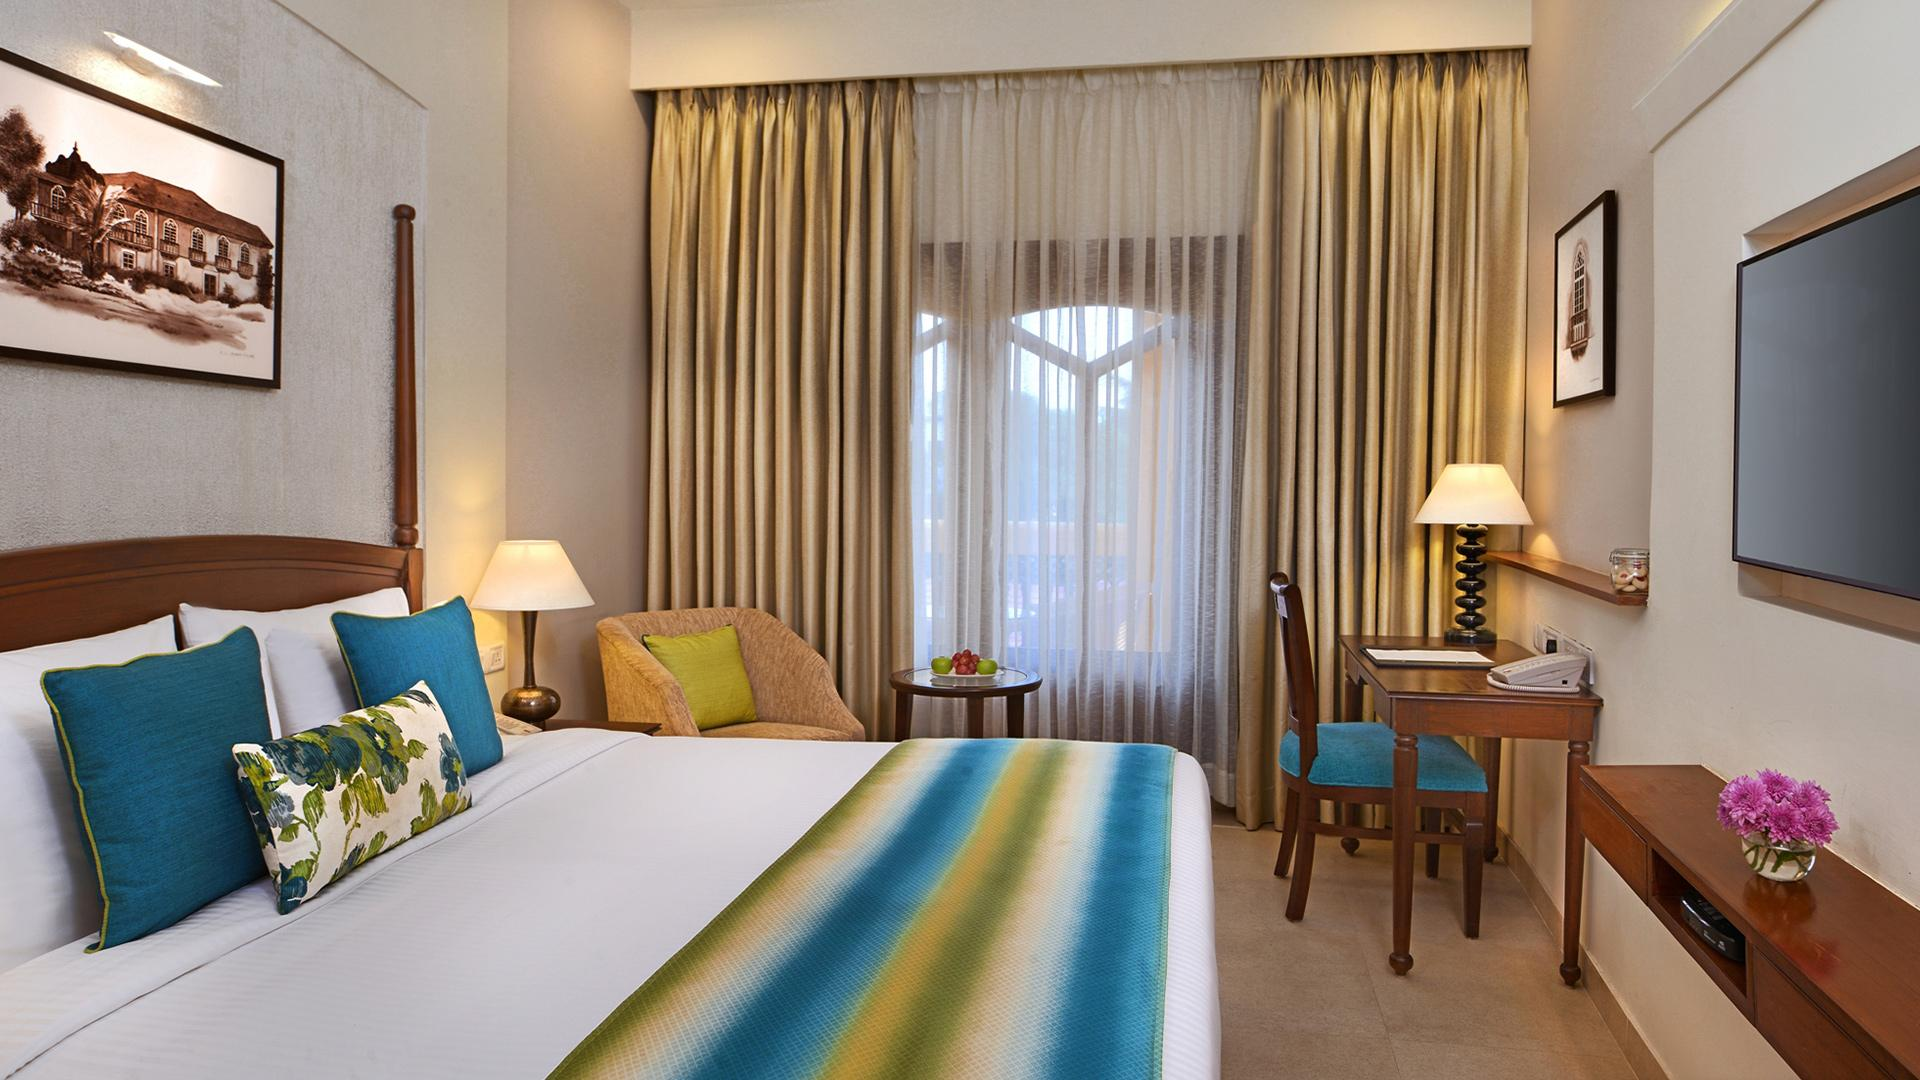 Standard Room image 1 at Country Inn & Suites by Radisson, Goa Candolim by North Goa, Goa, India